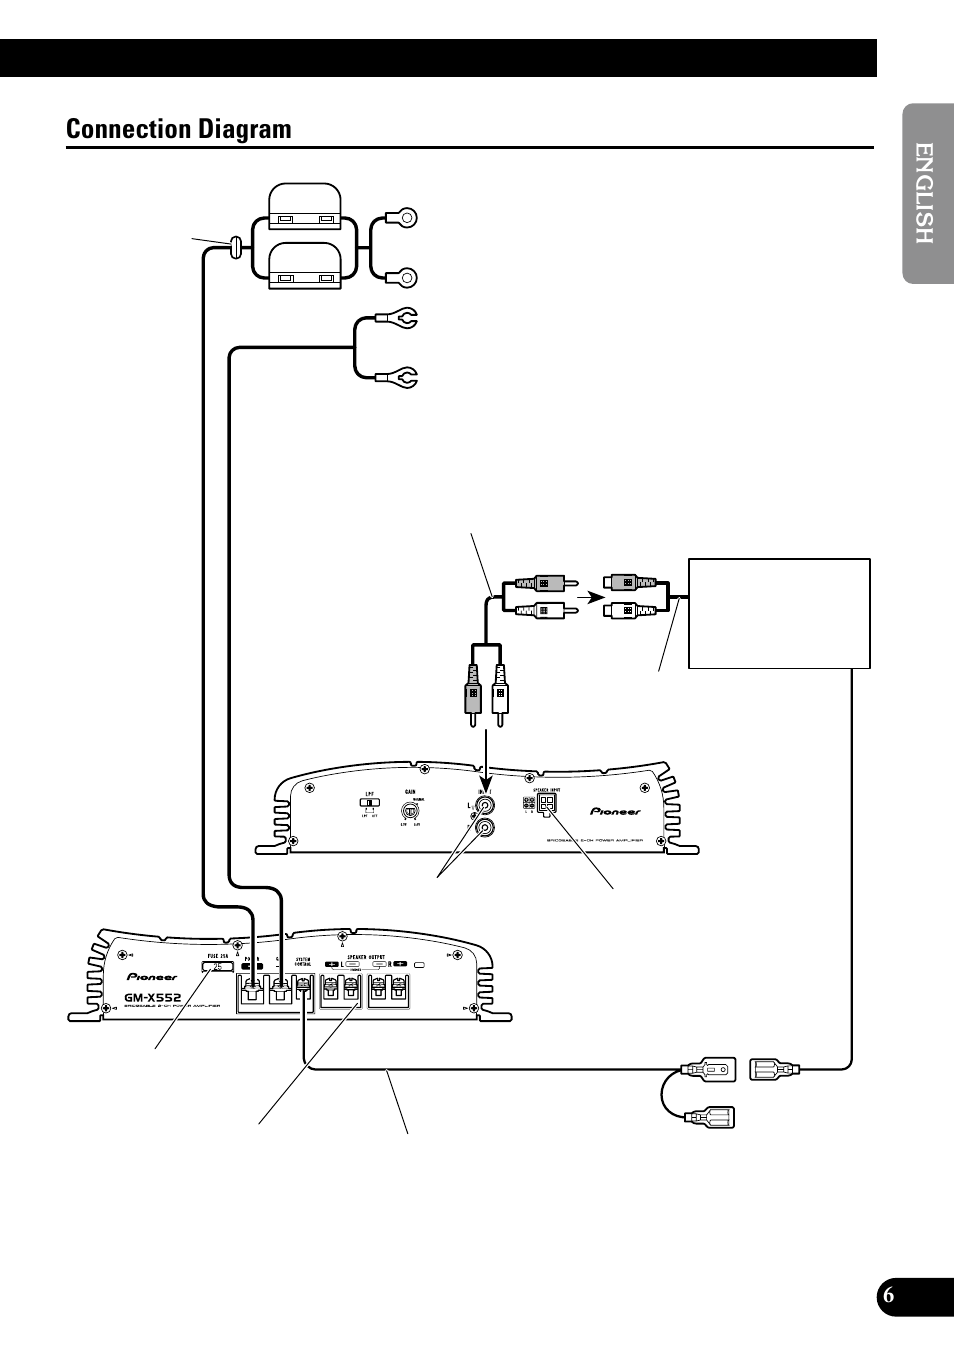 pioneer wiring remote typical vfd diagram connection gm x552 user manual page 7 76